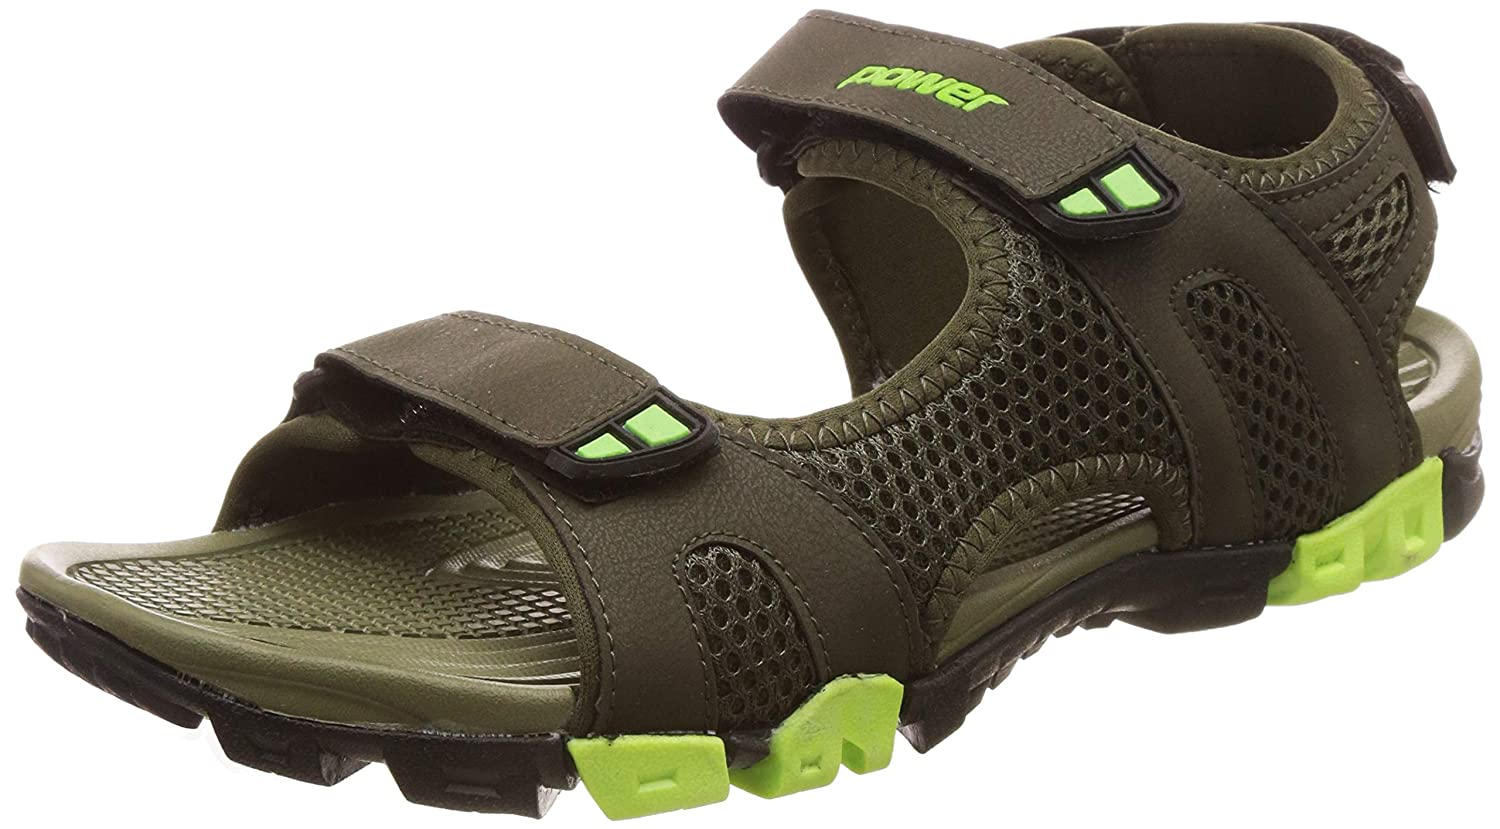 Sparx stylish sandals for men under 1000